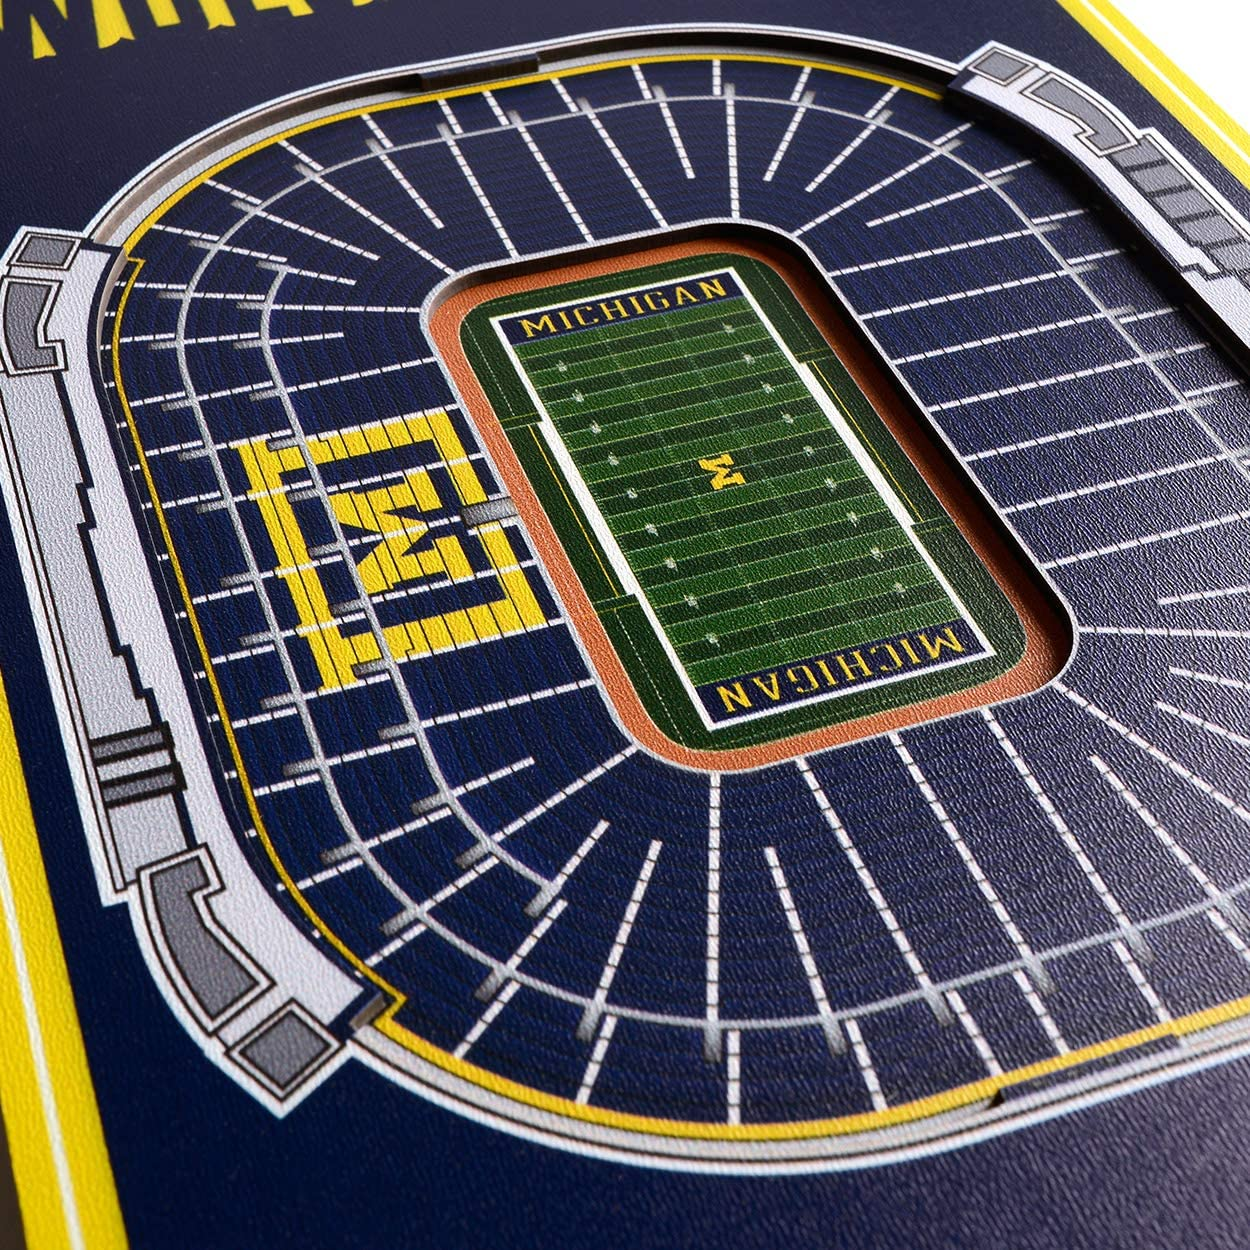 8 x 32 Inches YouTheFan NCAA 3D Stadium Banner